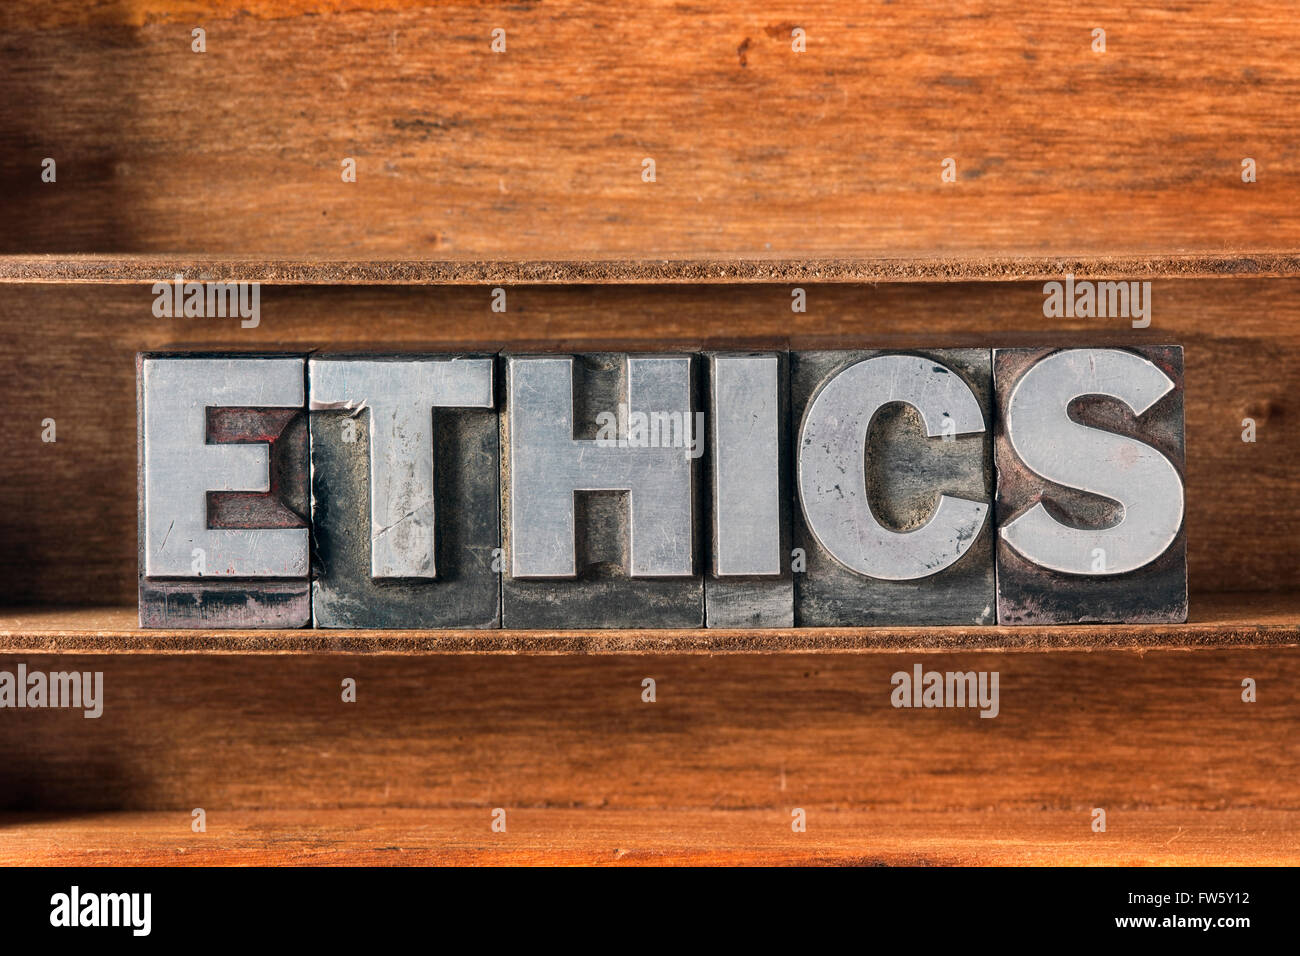 ethics word made from metallic letterpress type on wooden tray - Stock Image